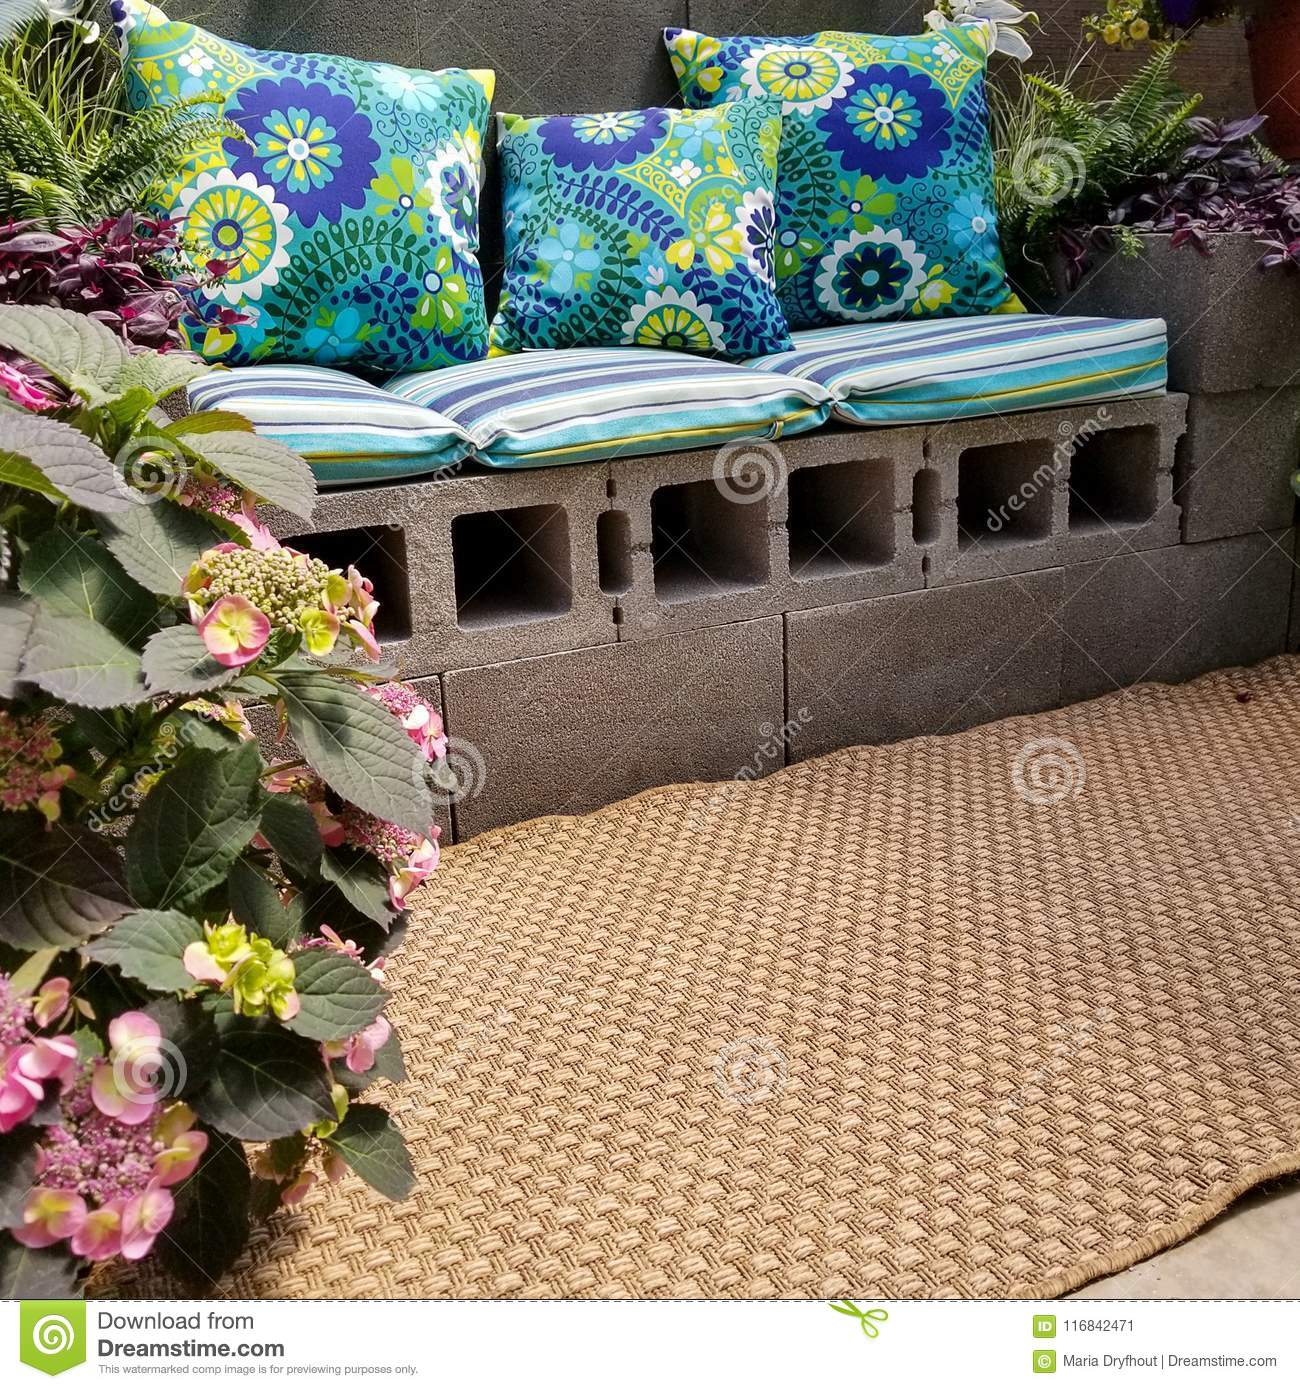 Cinder Block Patio Bench With Pillows